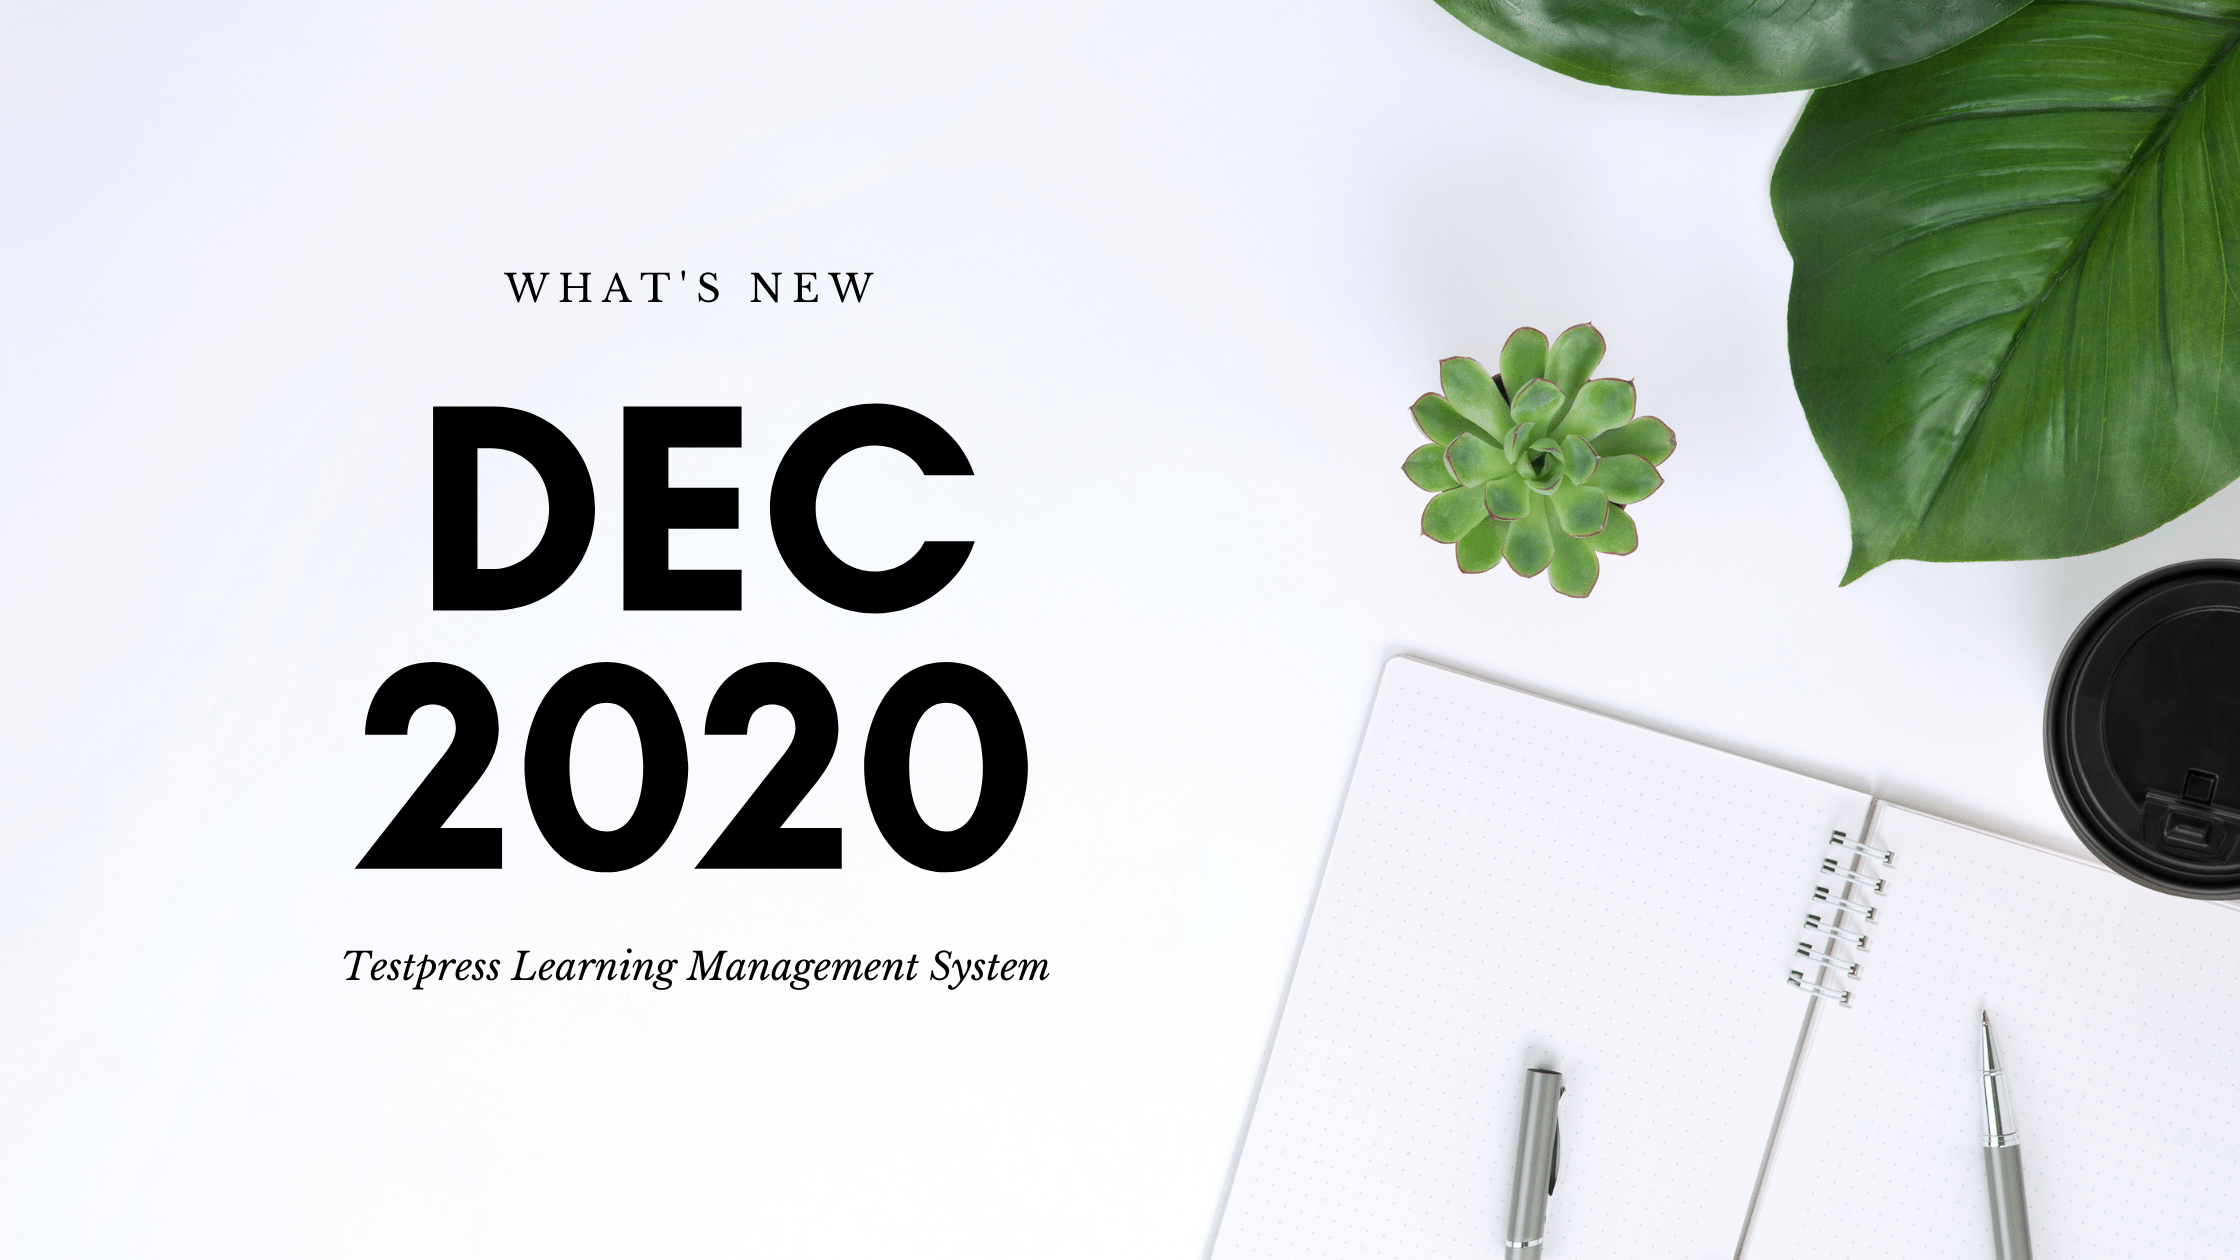 What's new in Testpress Learning Management System - Dec 2020